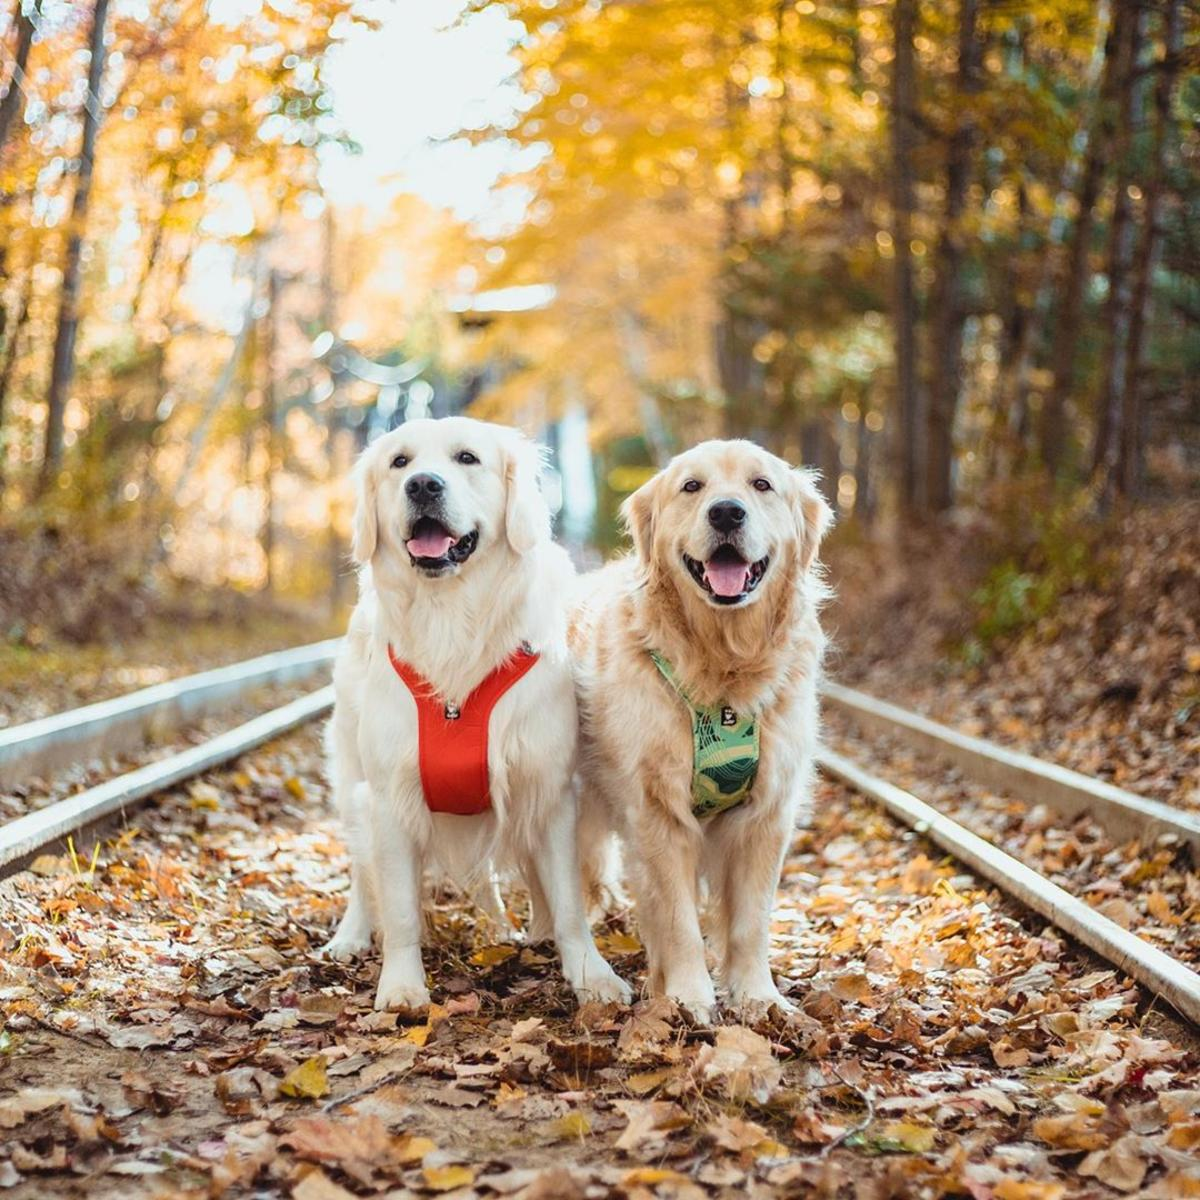 Two golden retrievers walking on a fall leaf-covered trail at Midland City Forest